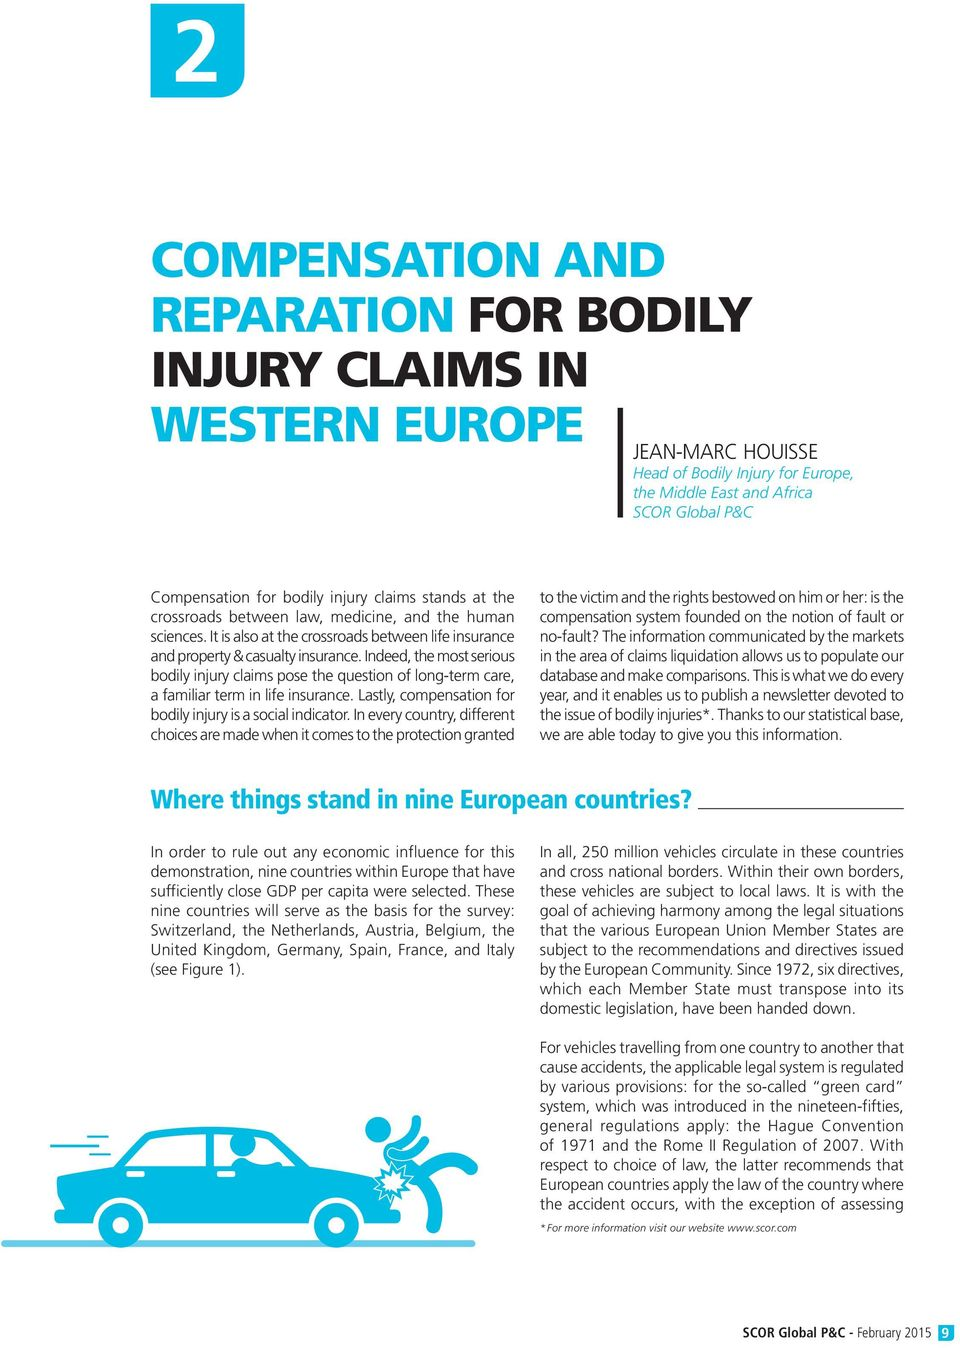 Indeed, the most serious bodily injury claims pose the question of long-term care, a familiar term in life insurance. Lastly, compensation for bodily injury is a social indicator.